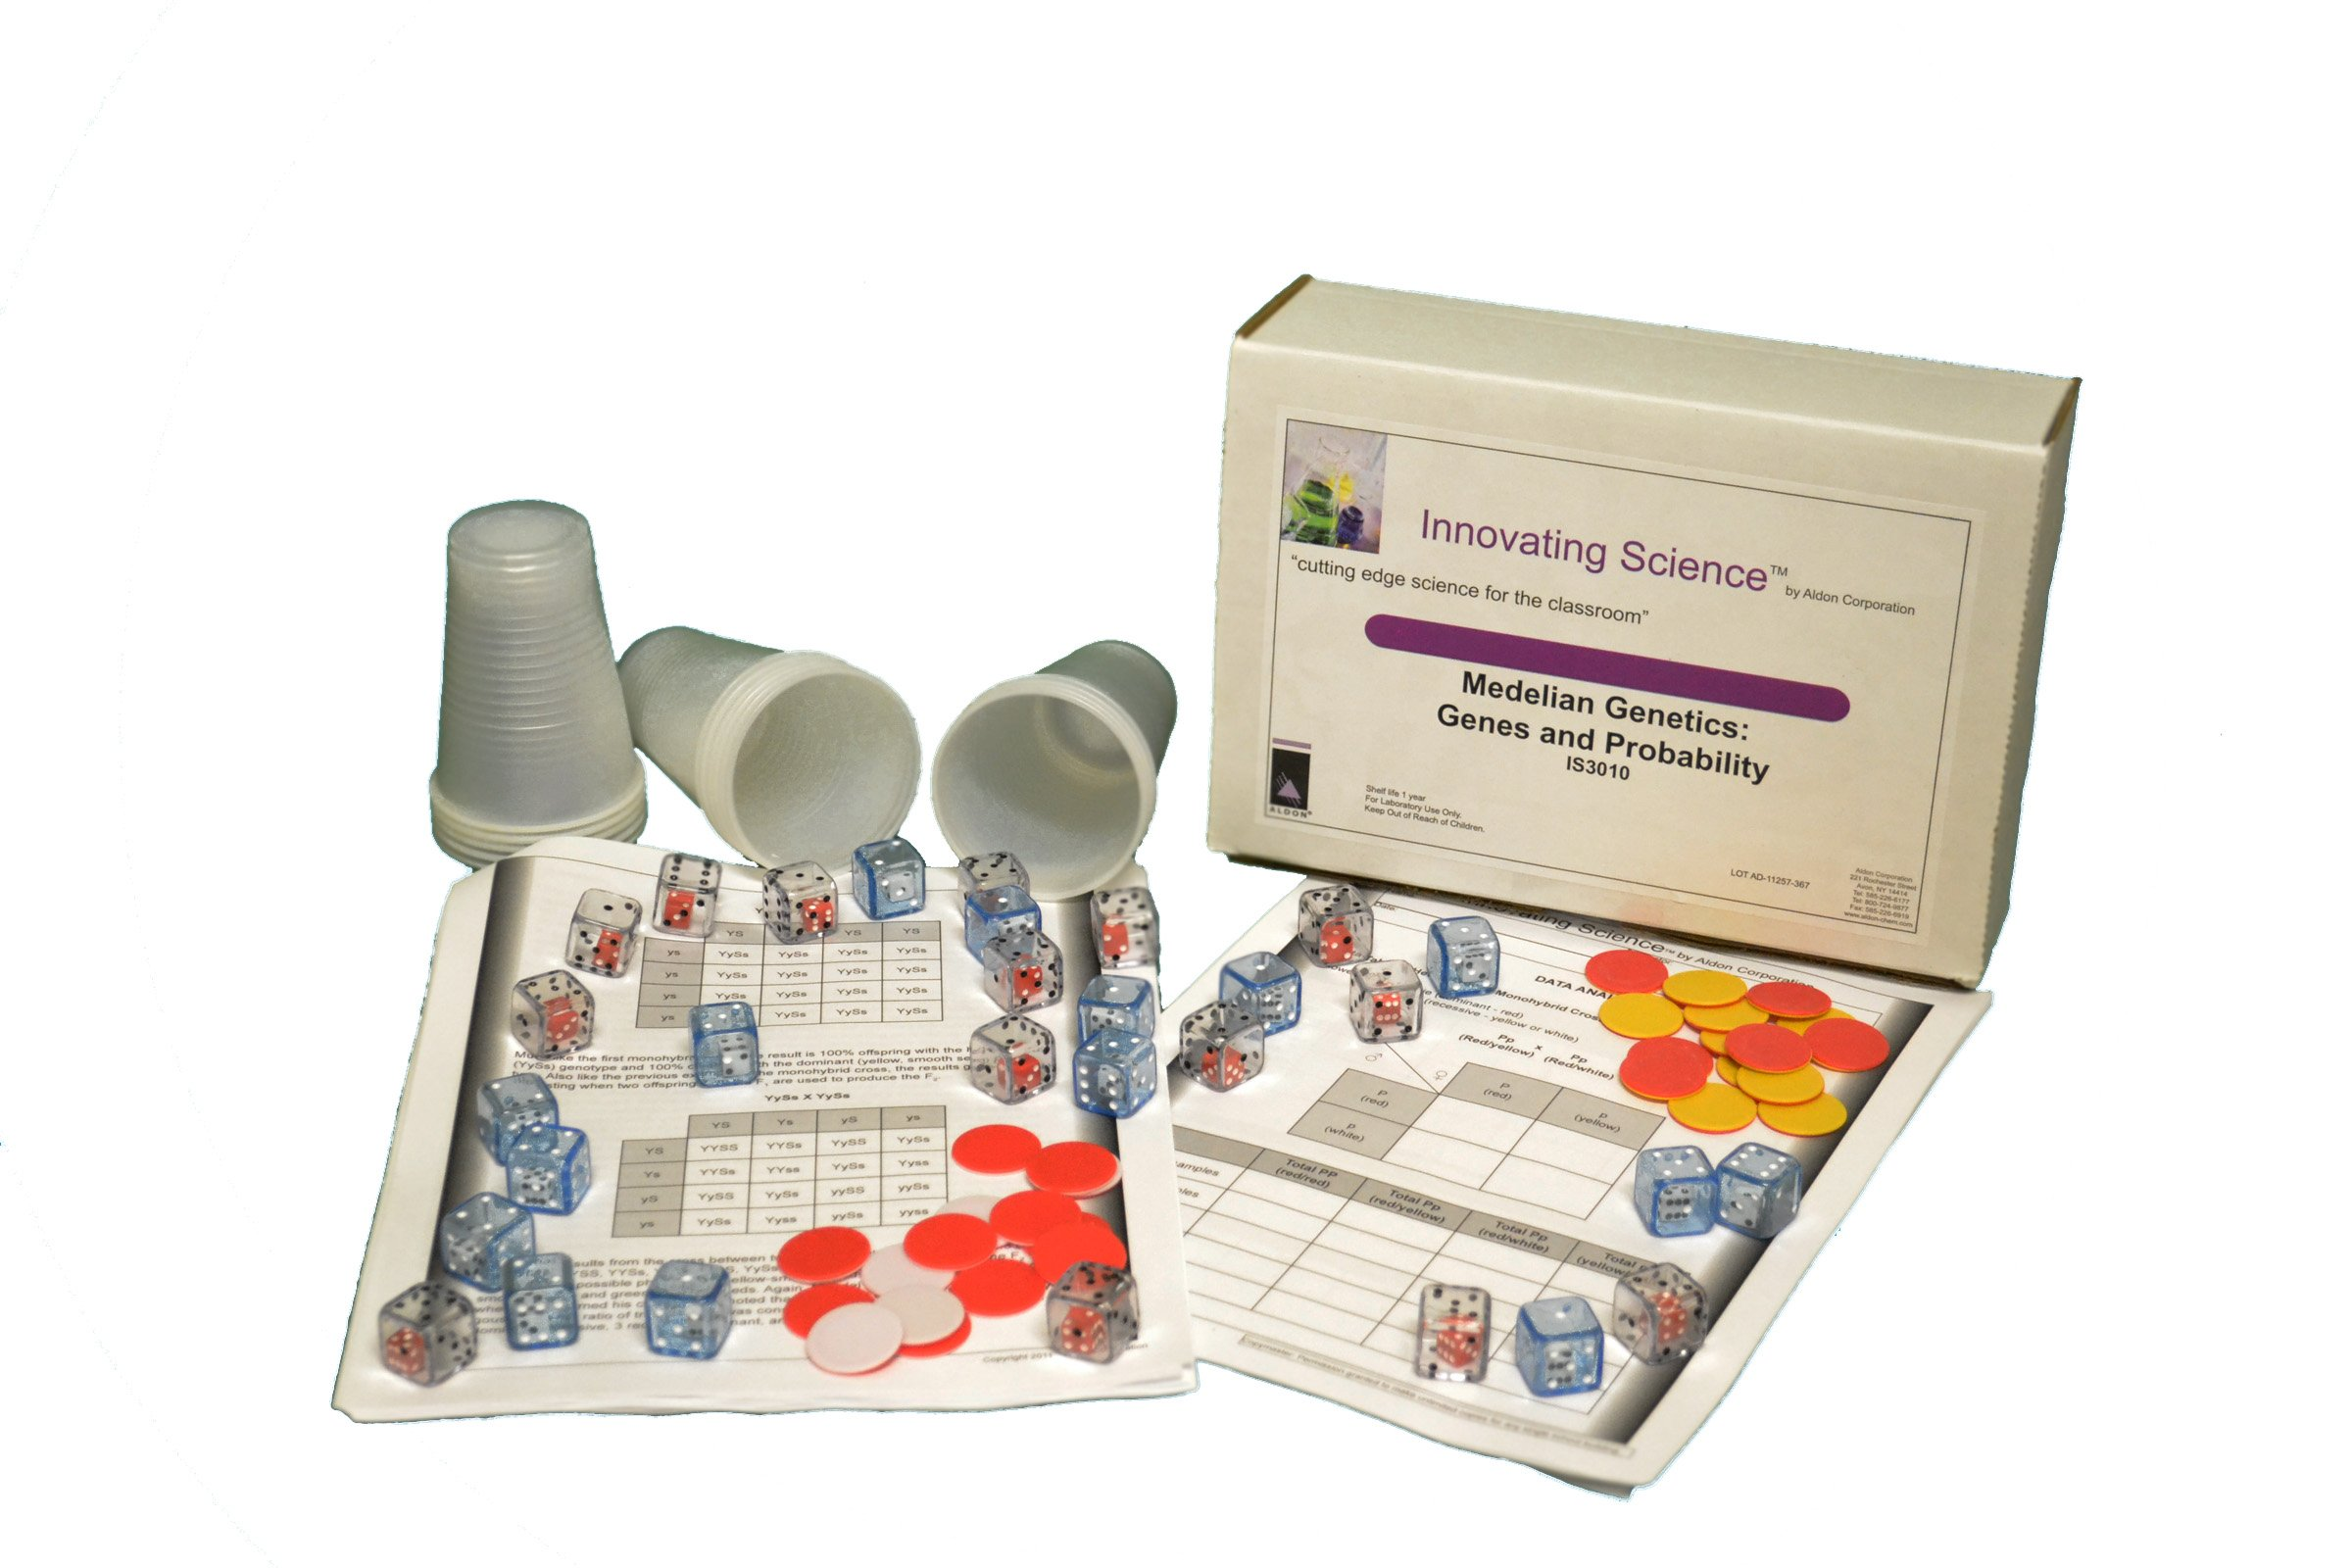 Innovating Science Introduction to Mendelian Genetics Kit